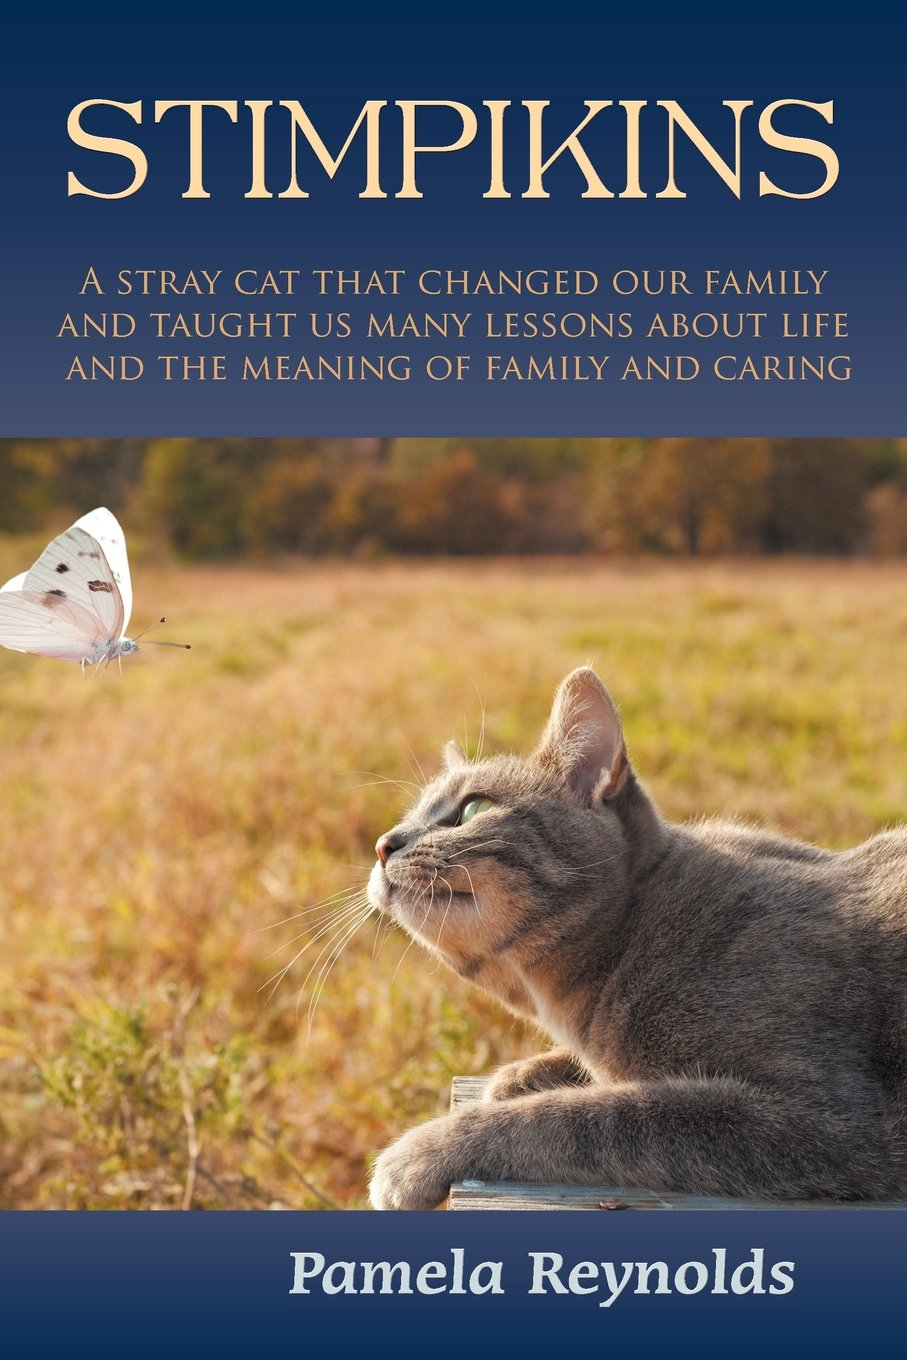 Stimpikins: A Stray Cat that Changed Our Family and Taught